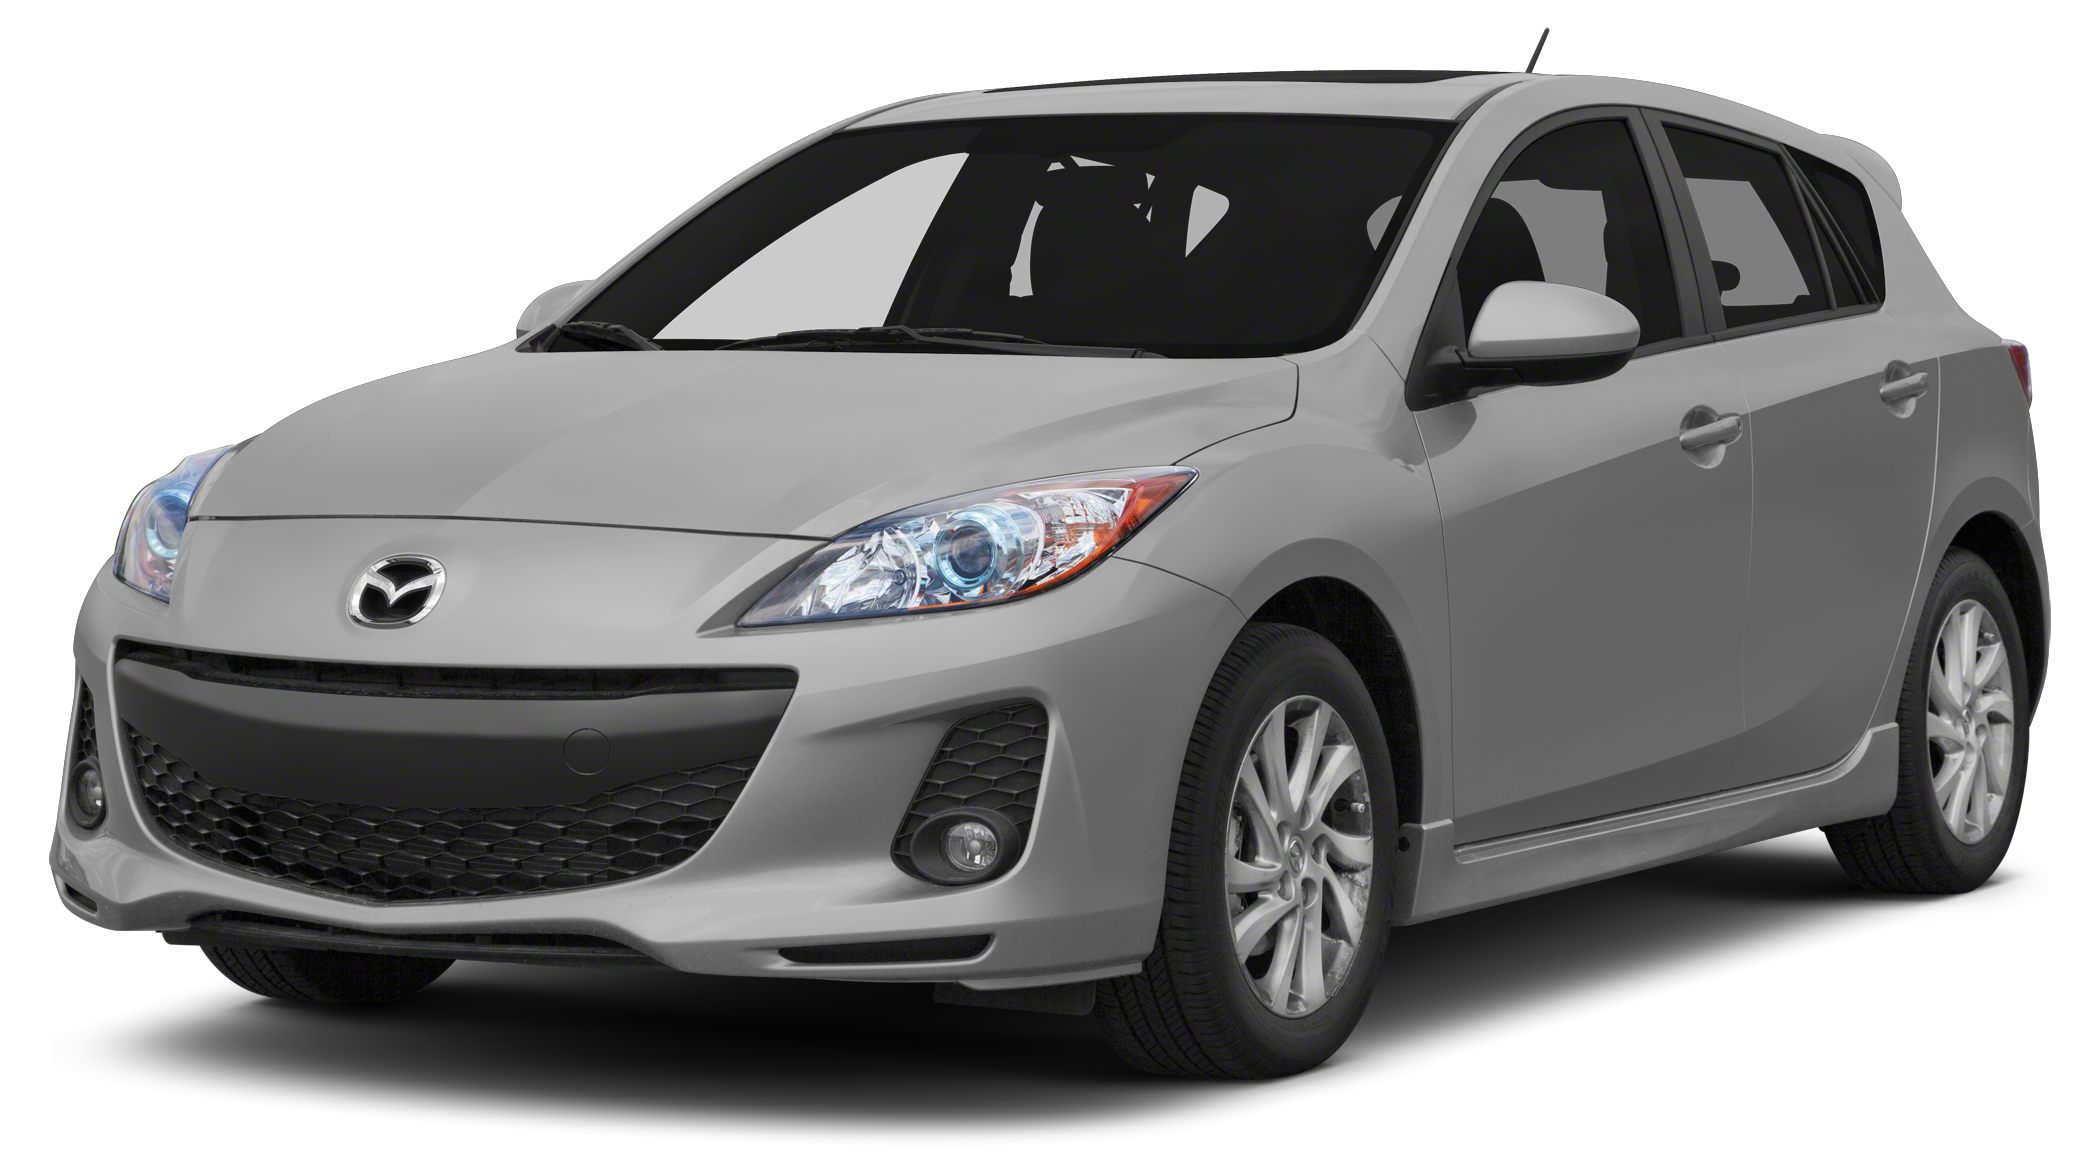 2012 Mazda MAZDA3 i Touring Mazda3 i Touring trim Clean PRICED TO MOVE 1200 below NADA Retail